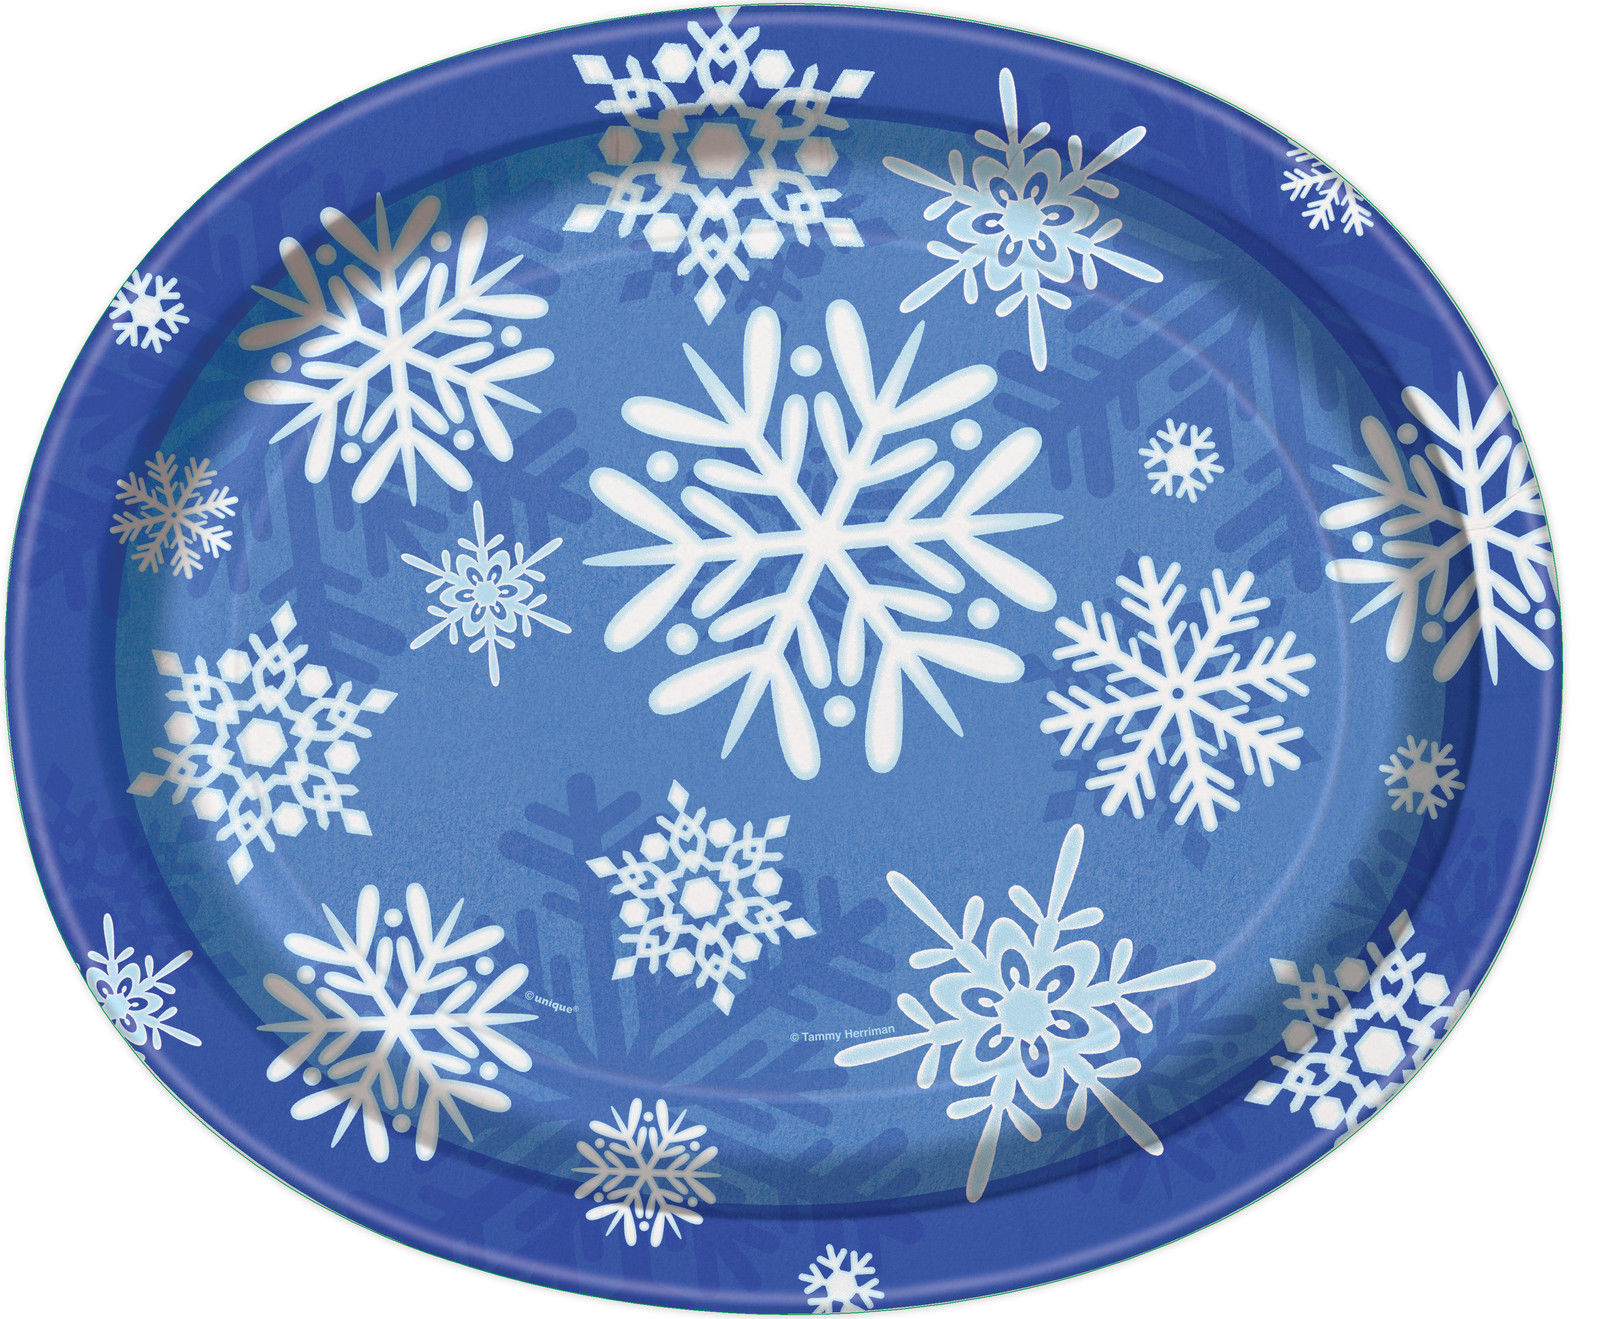 Christmas Platter Plates.Details About 8 X Large Oval Christmas Buffet Serving Platter Plates Blue White Snowflakes